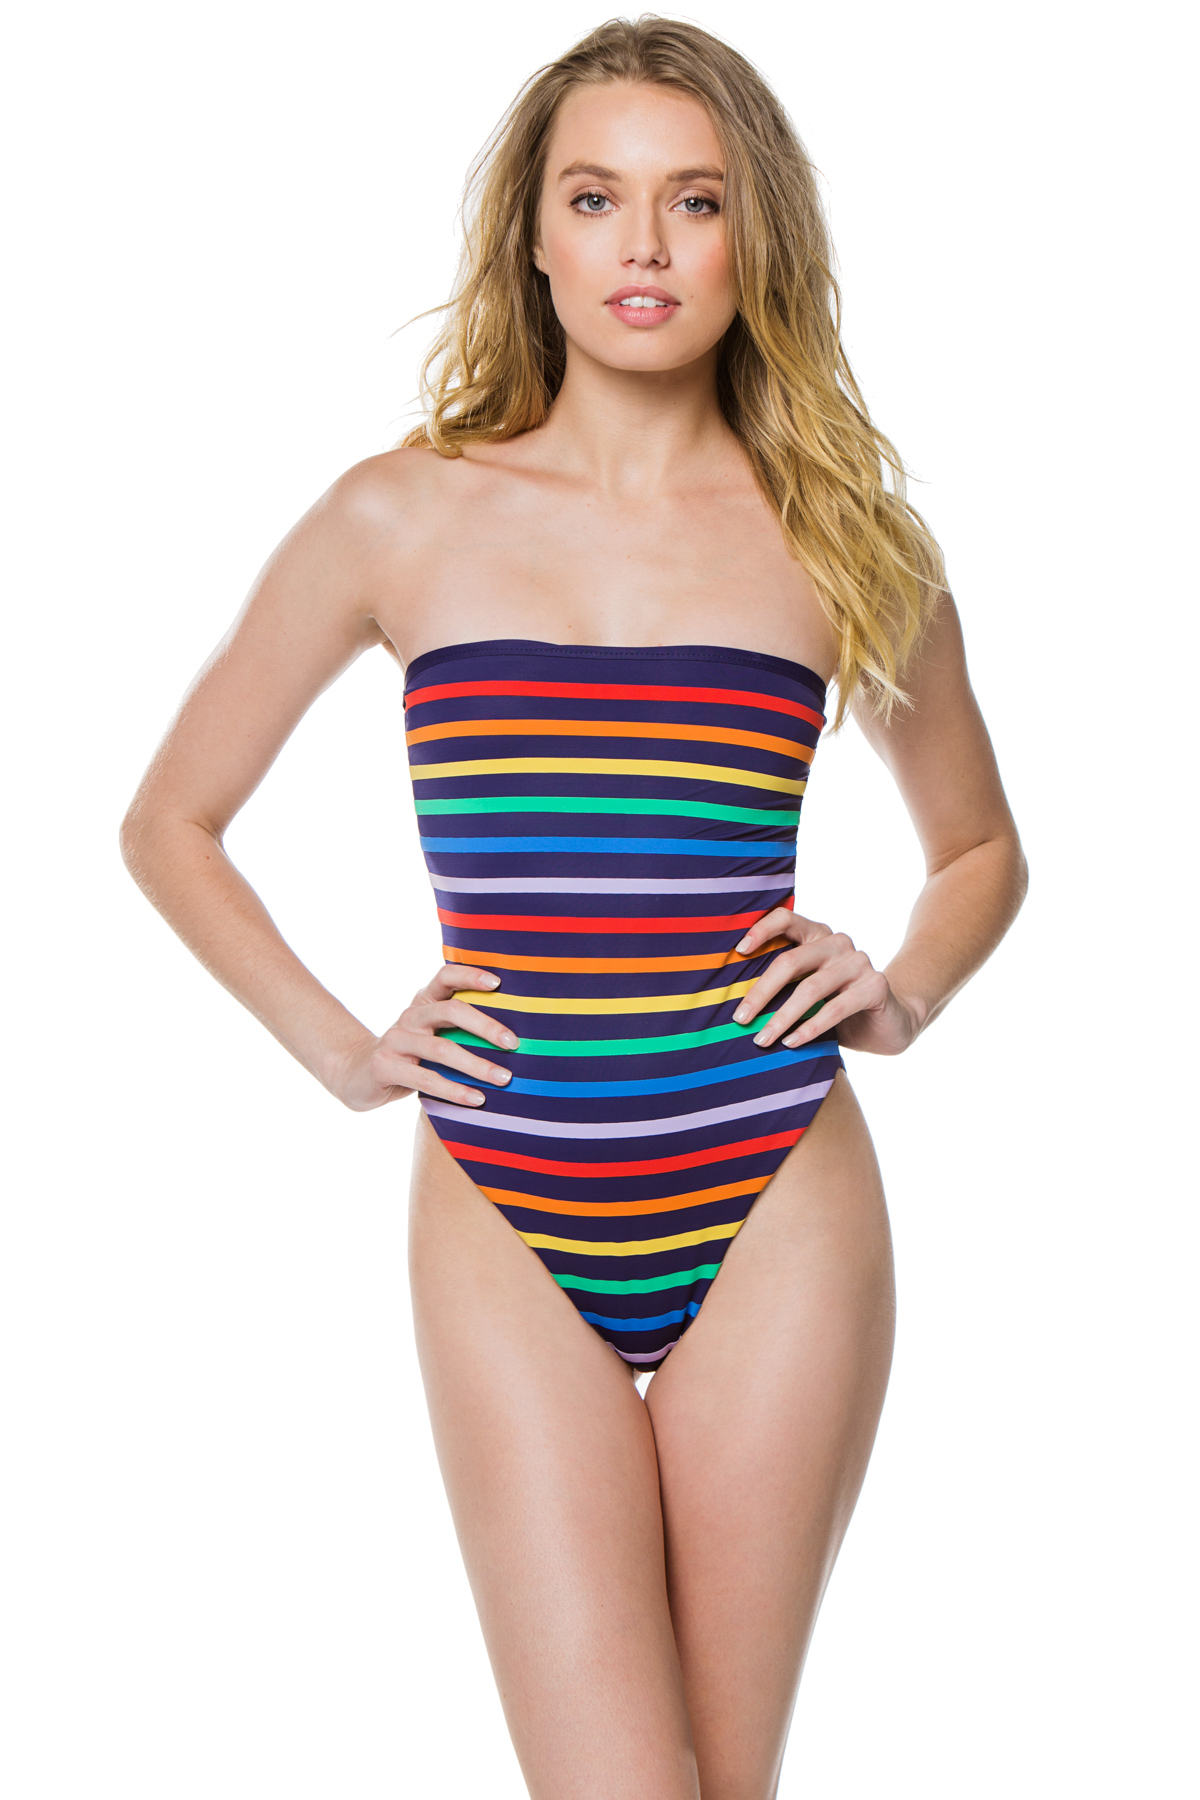 Paraty Striped Bandeau One Piece Swimsuit - Navy 1